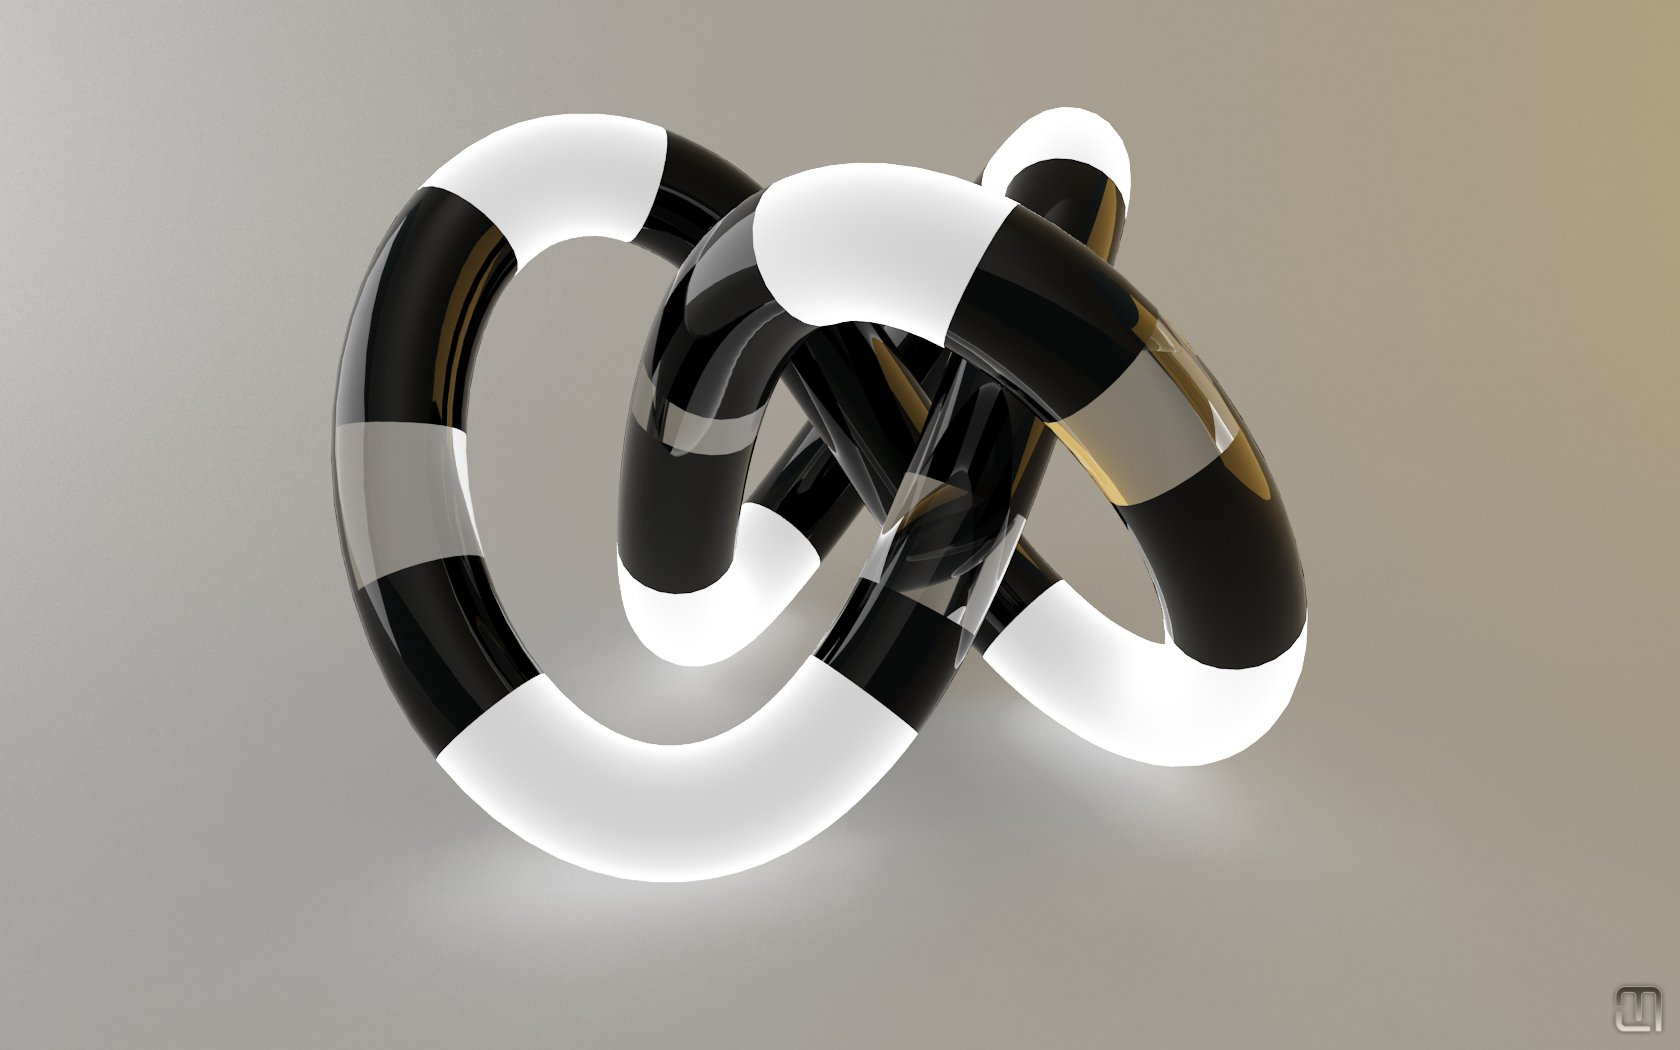 CGI - Abstract  3D Digital CGI White Black Wallpaper